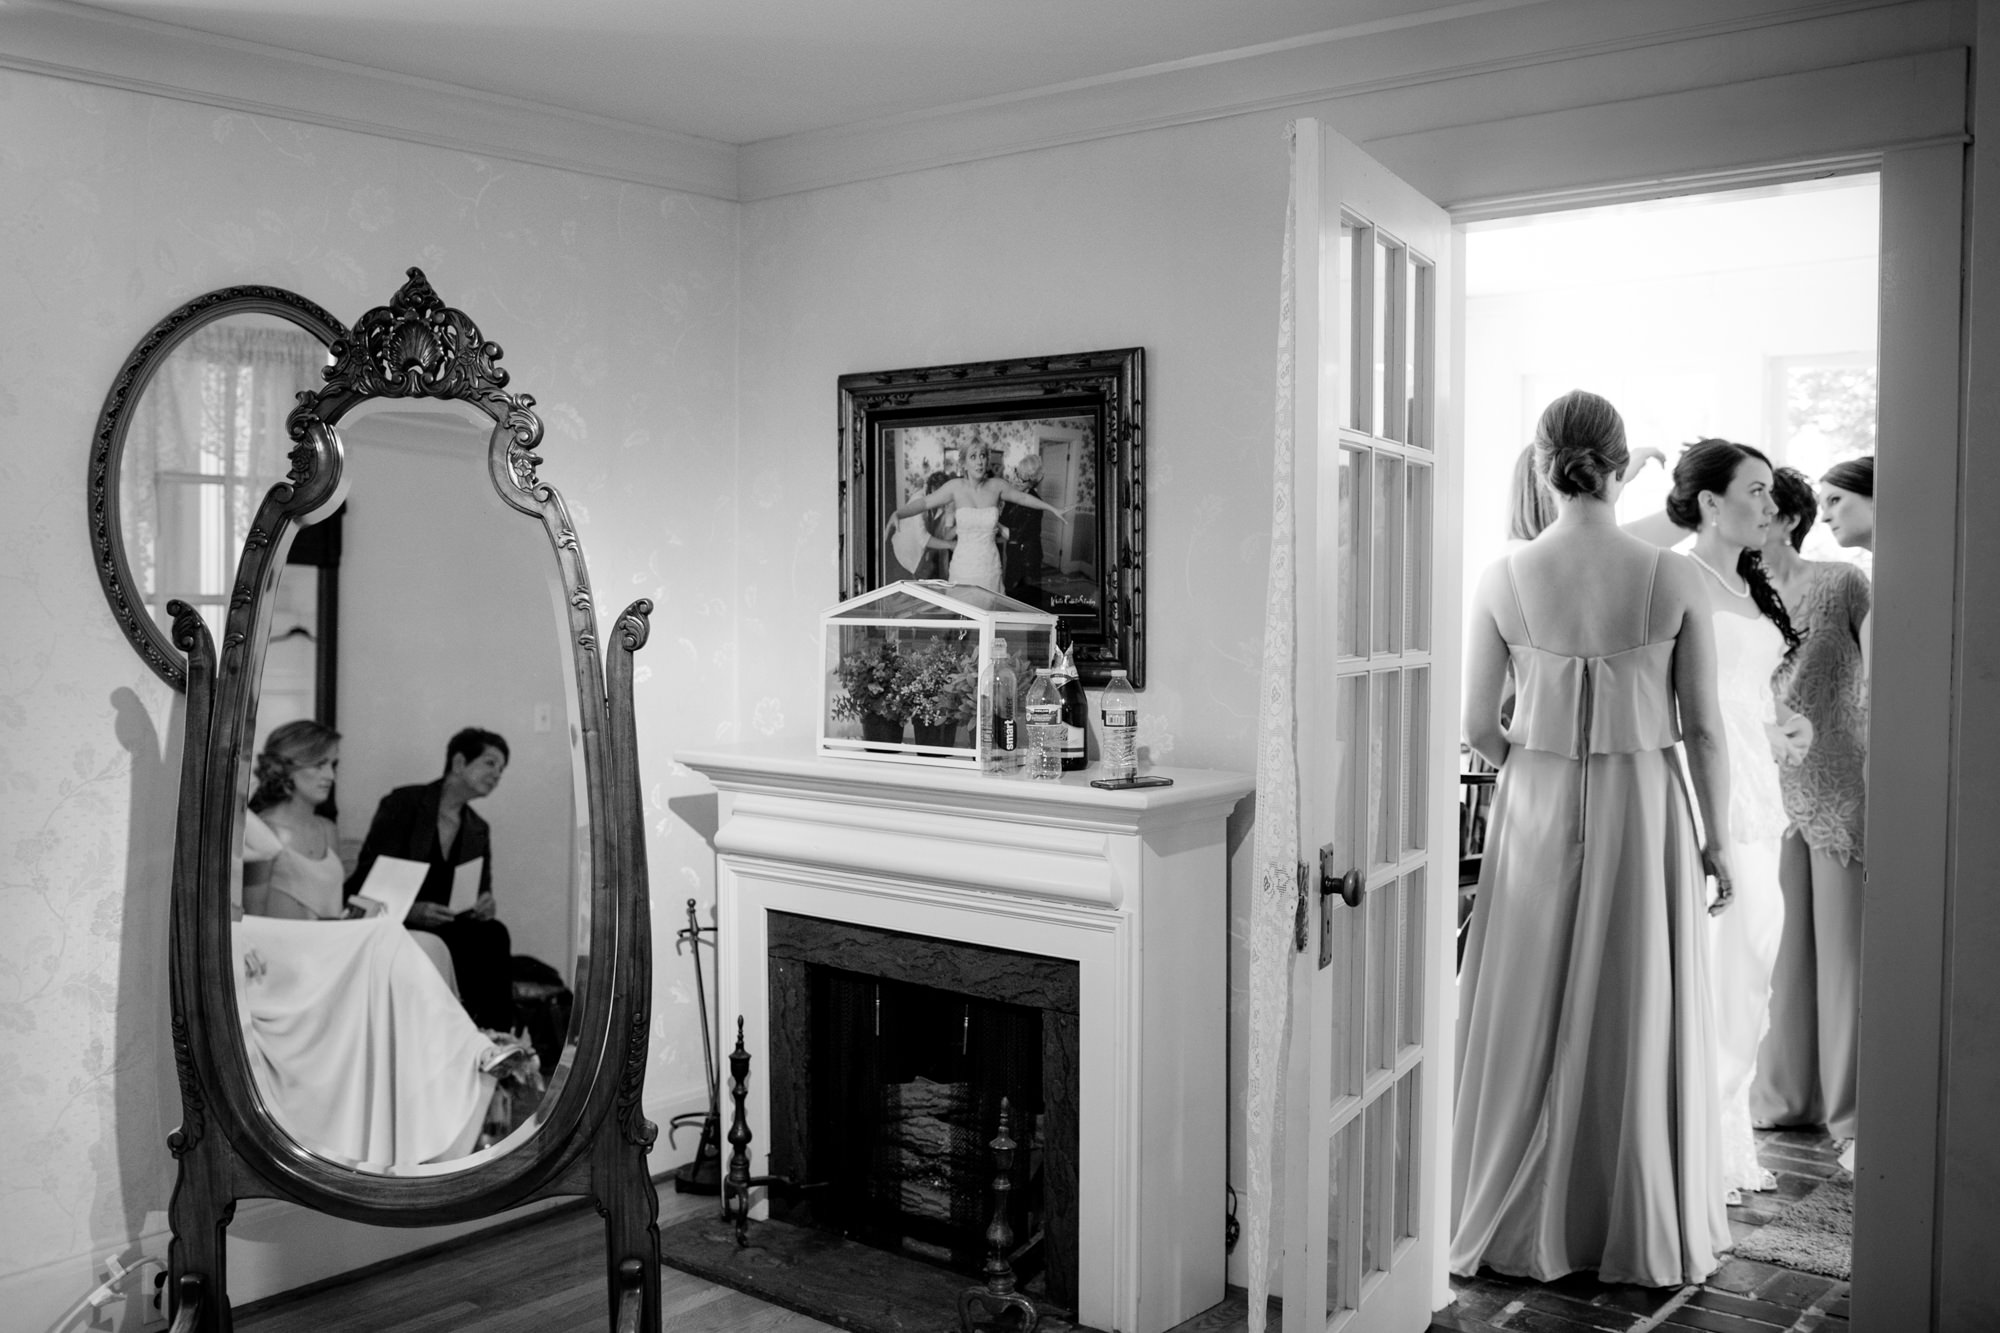 Look closer - photo of bride getting ready reflected in mirror above fireplace - Jessica Hill Photography